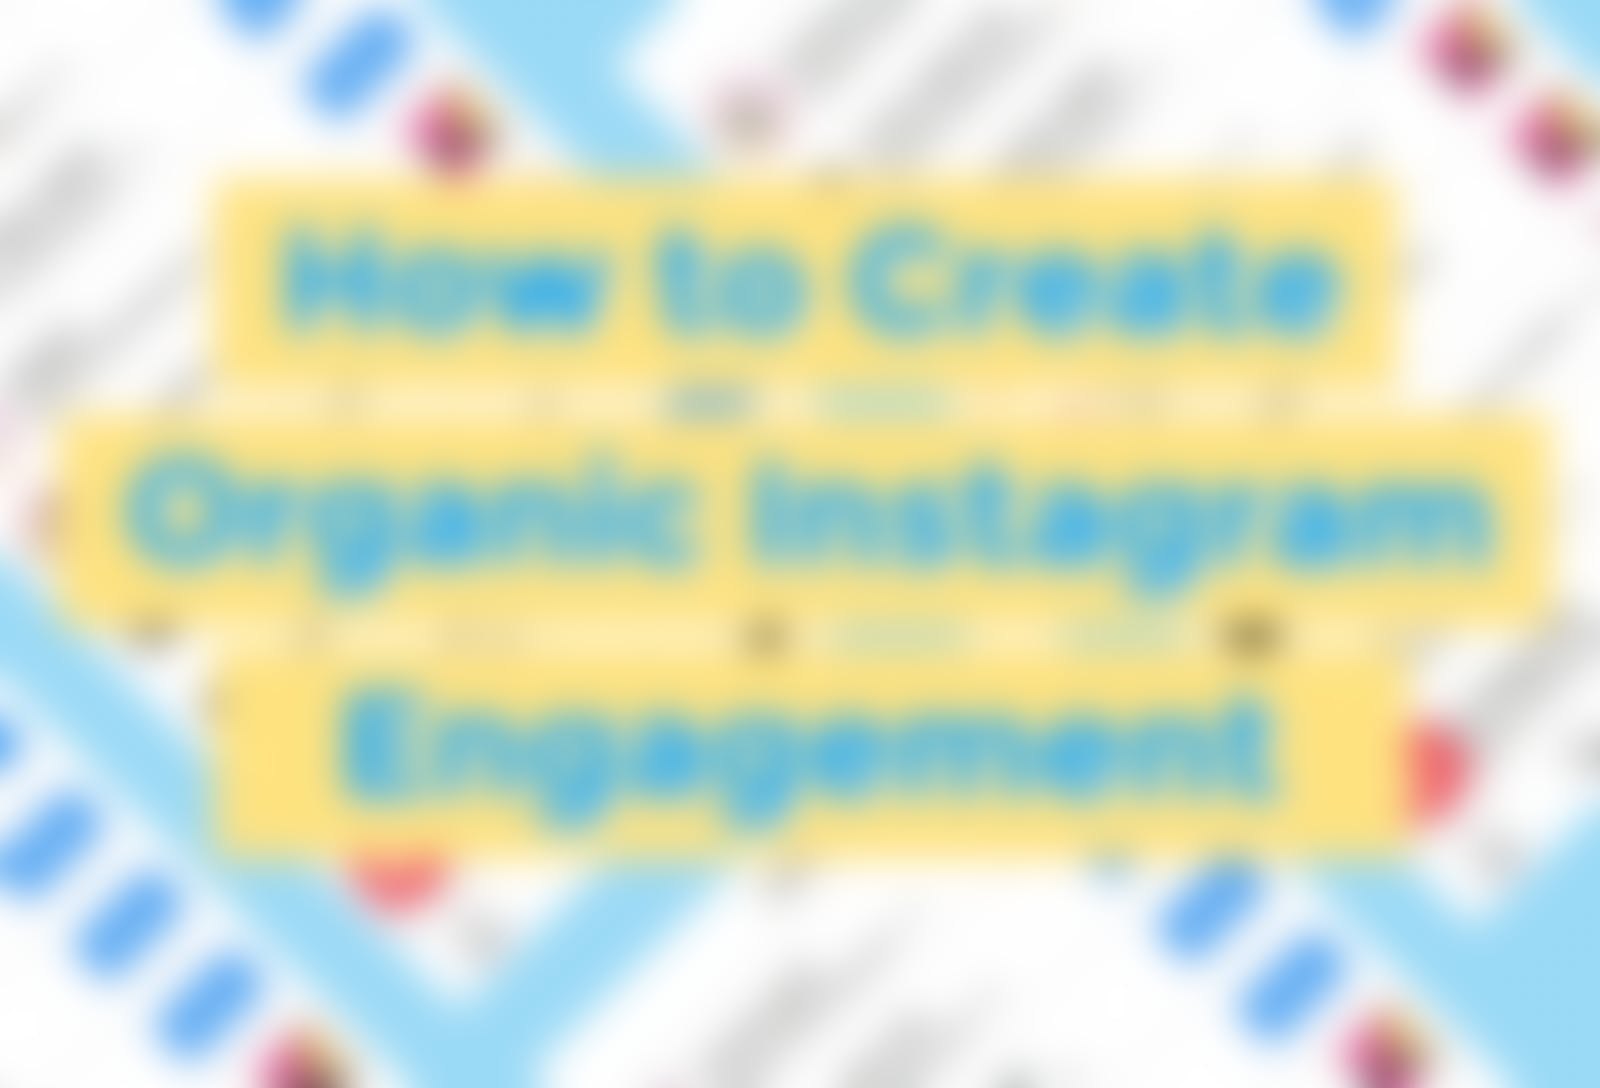 Tips on how to create organic Instagram engagement